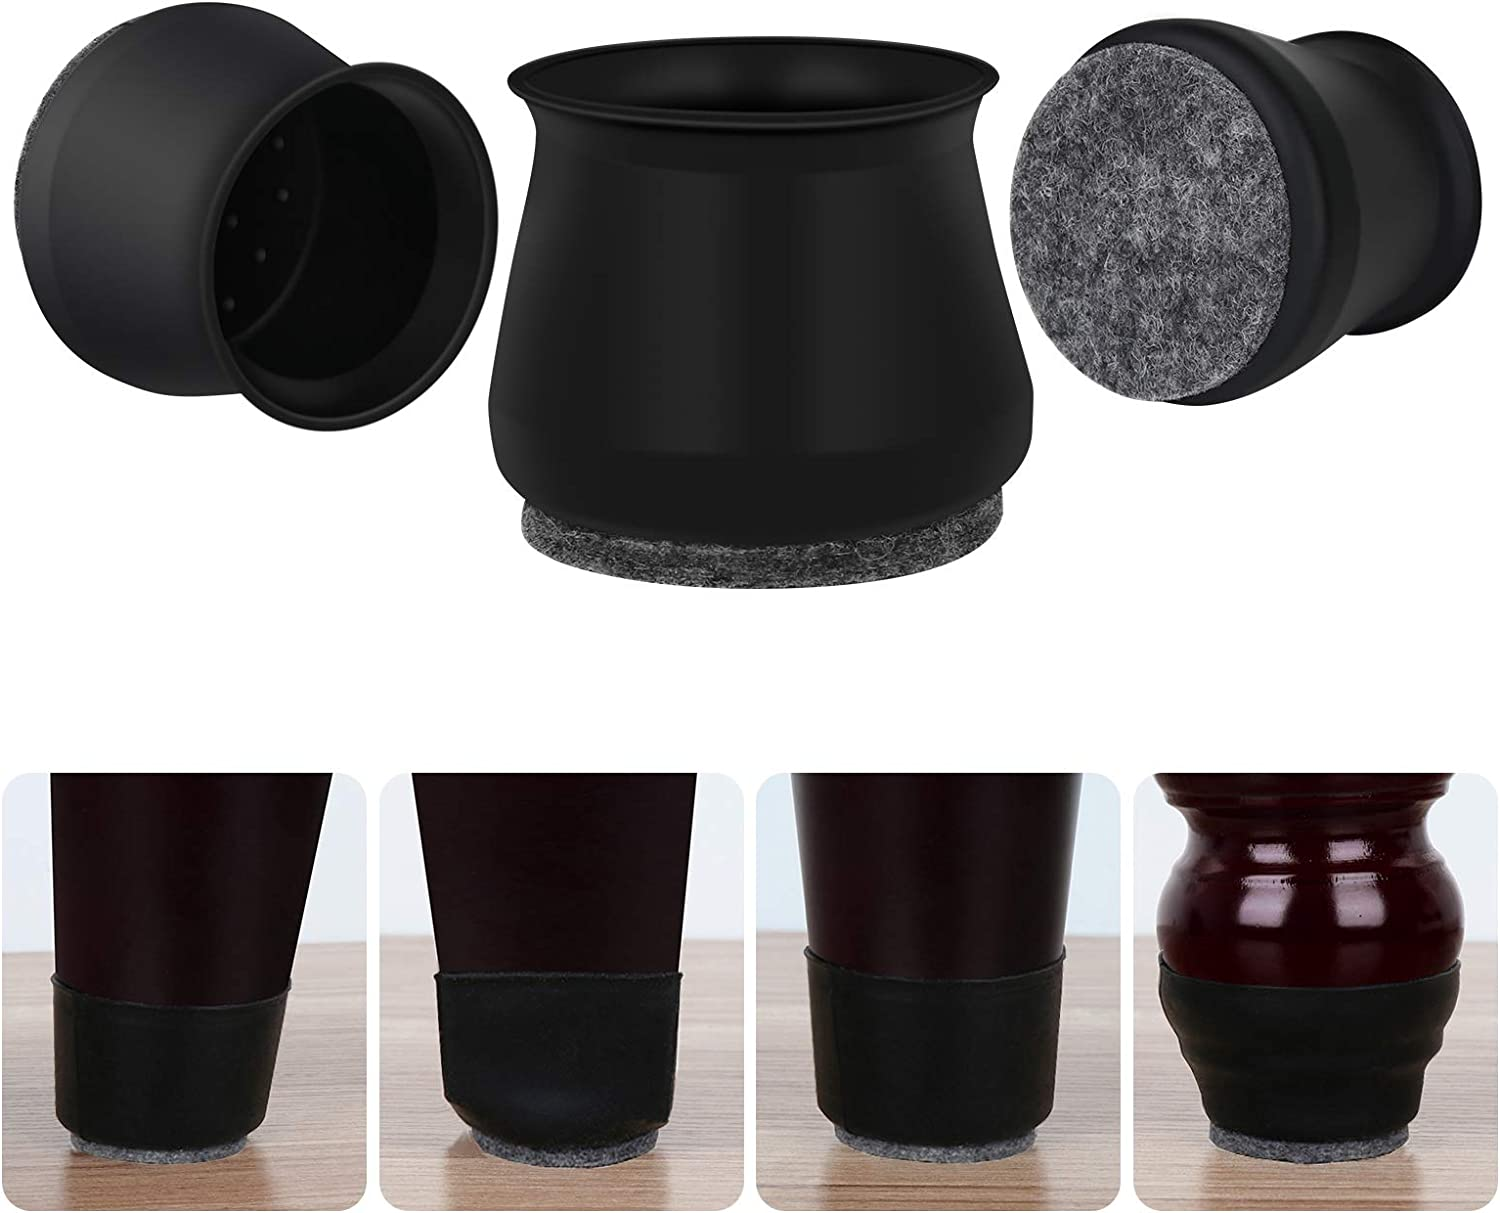 Upgrade Chair Leg Floor Protectors, 20 pcs Black Silicone Felt Bottom Chair Leg Covers, Furniture Feet Pads for Hardwood Floors, Stool Table Leg Protector Caps to Prevent Scratches Noise(Medium)